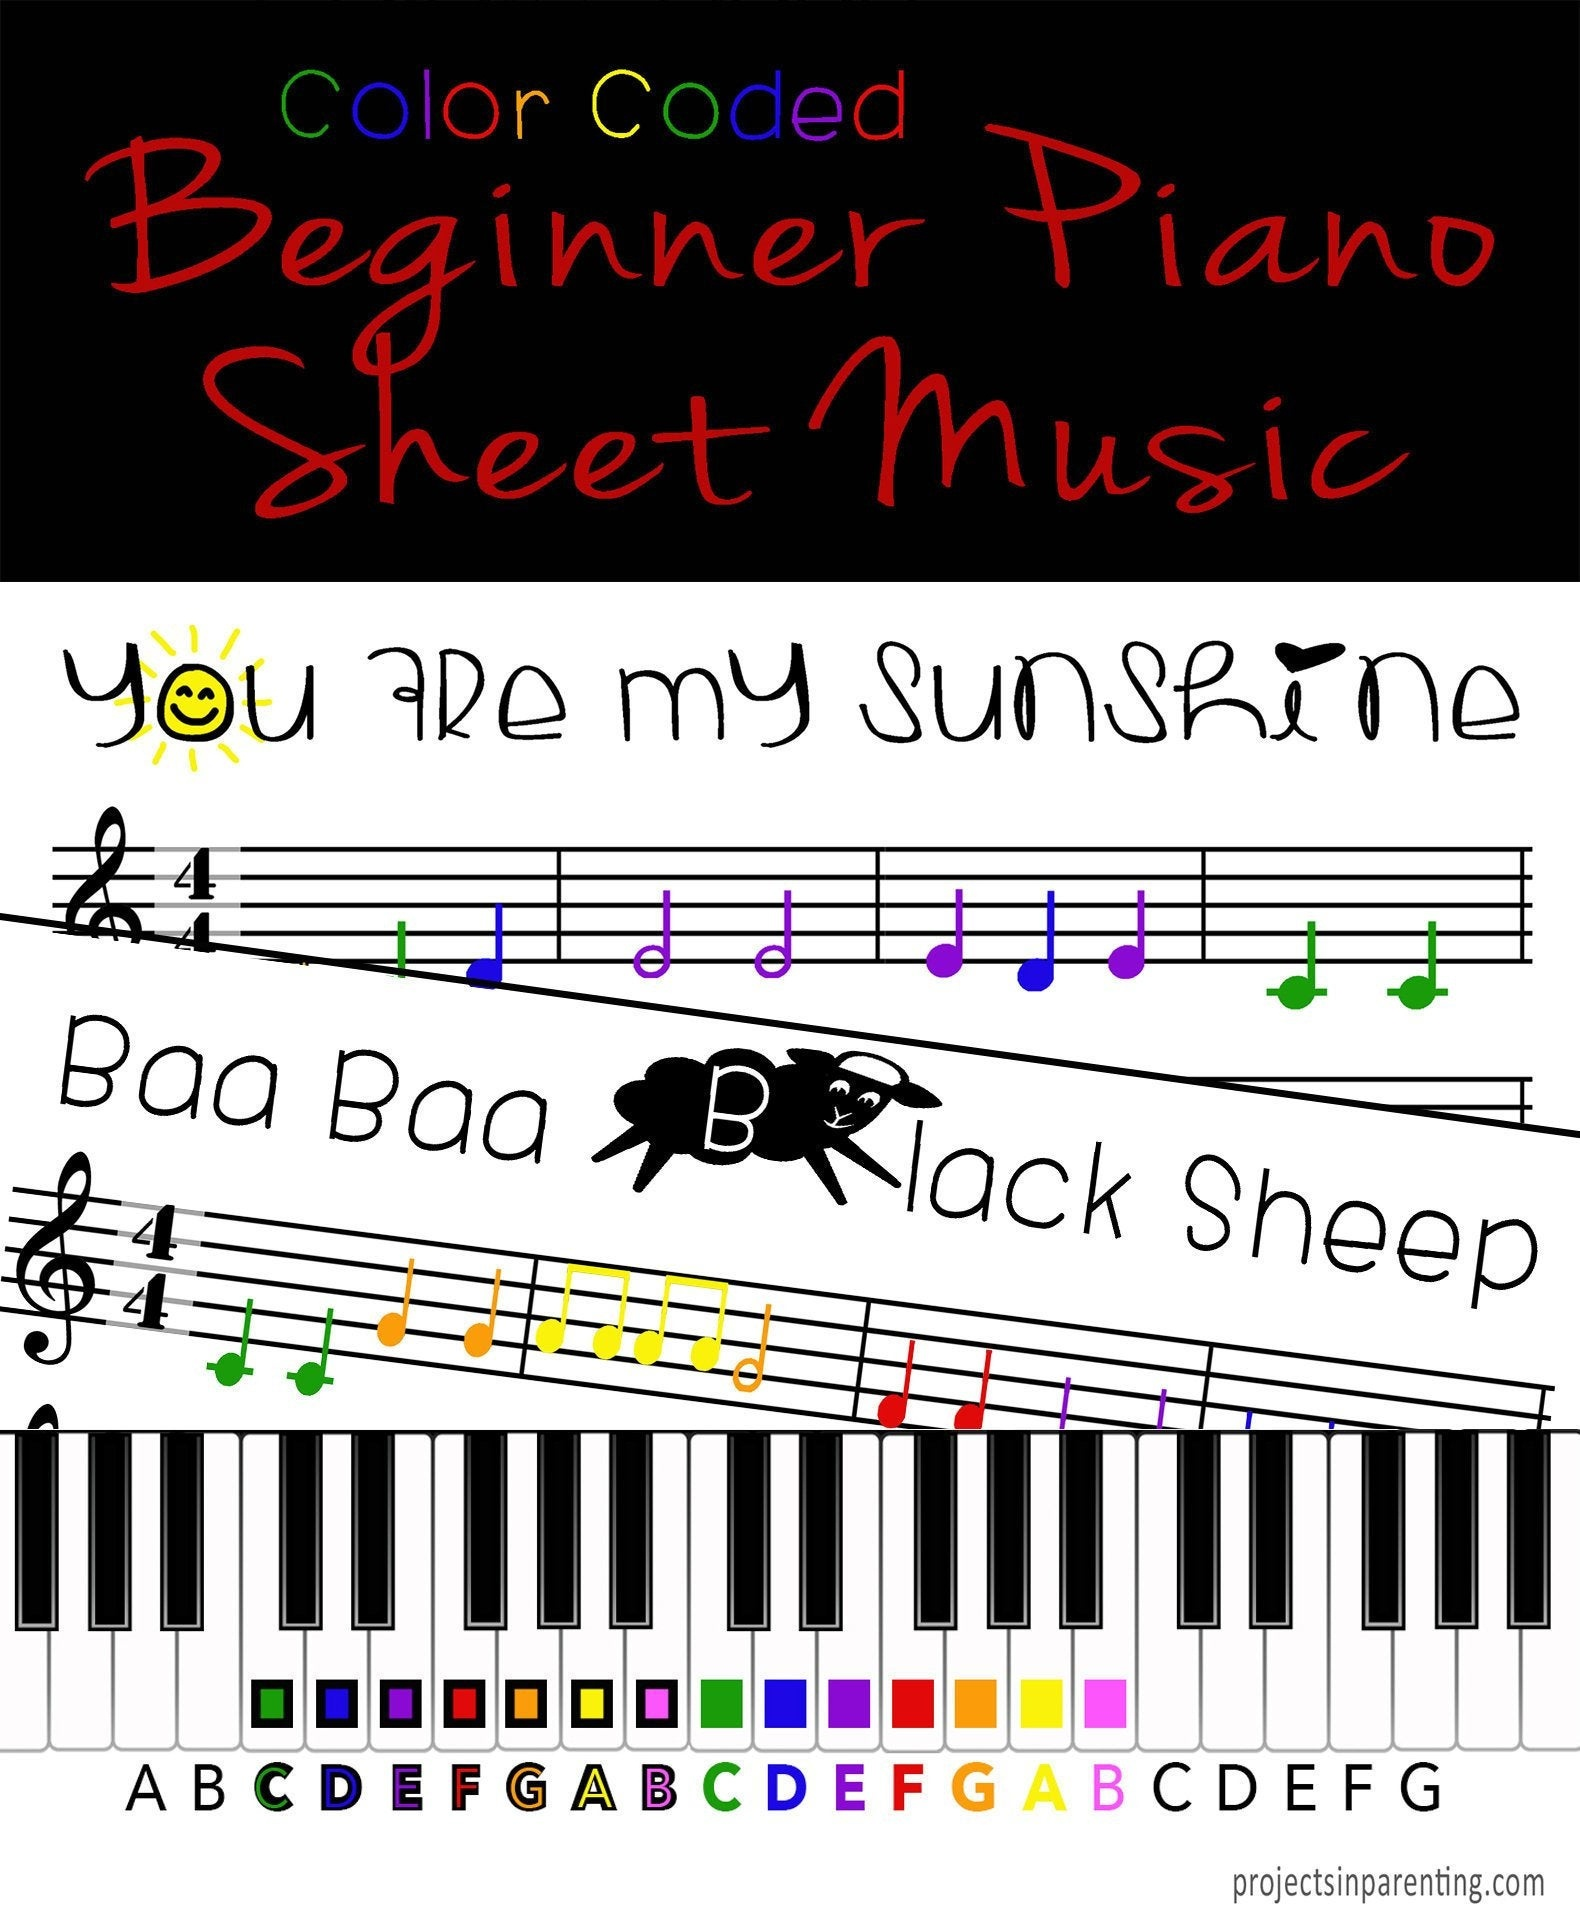 You Are My Sunshine And Baa Baa Black Sheep Color Coded | Etsy - Free Printable Piano Sheet Music For You Are My Sunshine